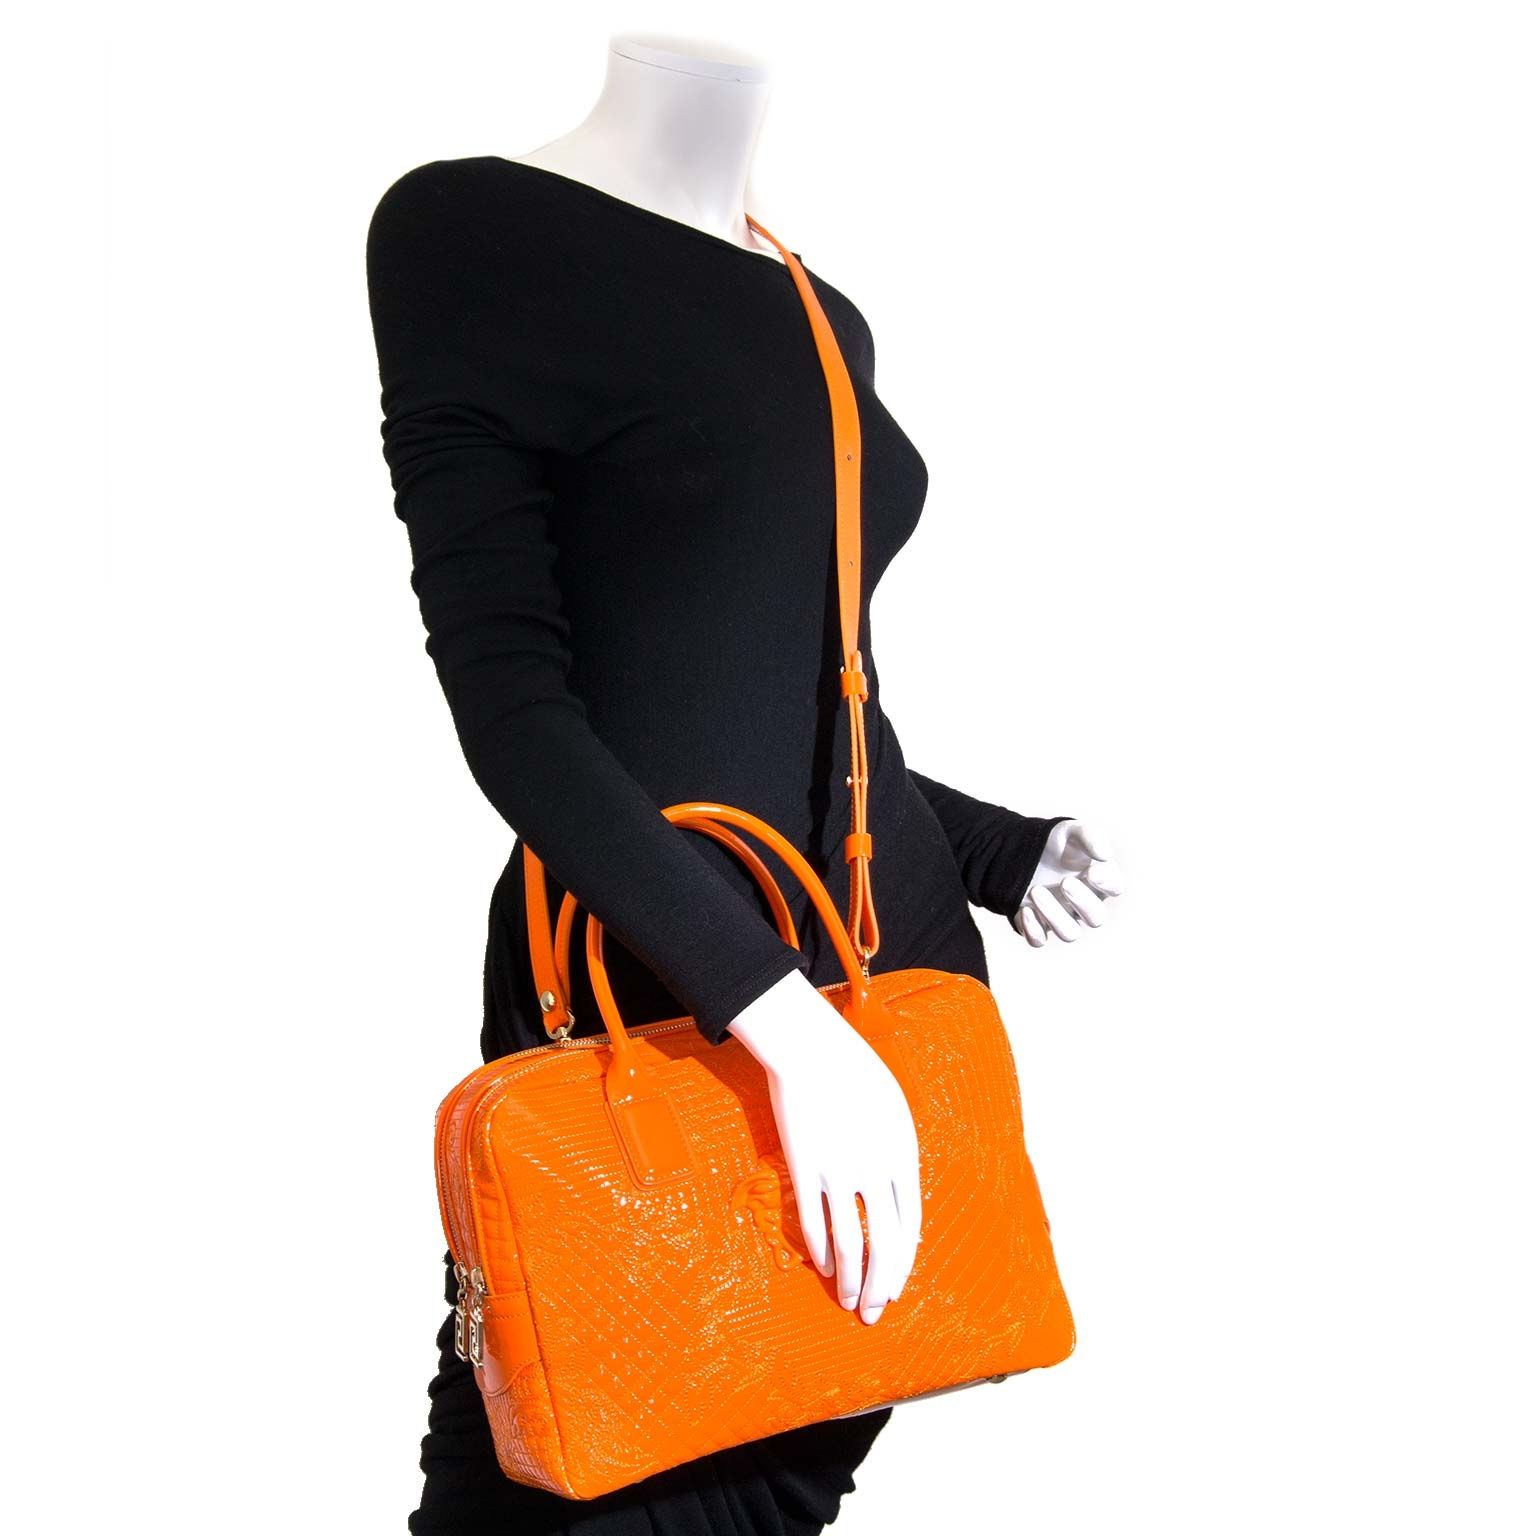 Versace Orange Patent Leather Bowling Bag for sale online at Labellov